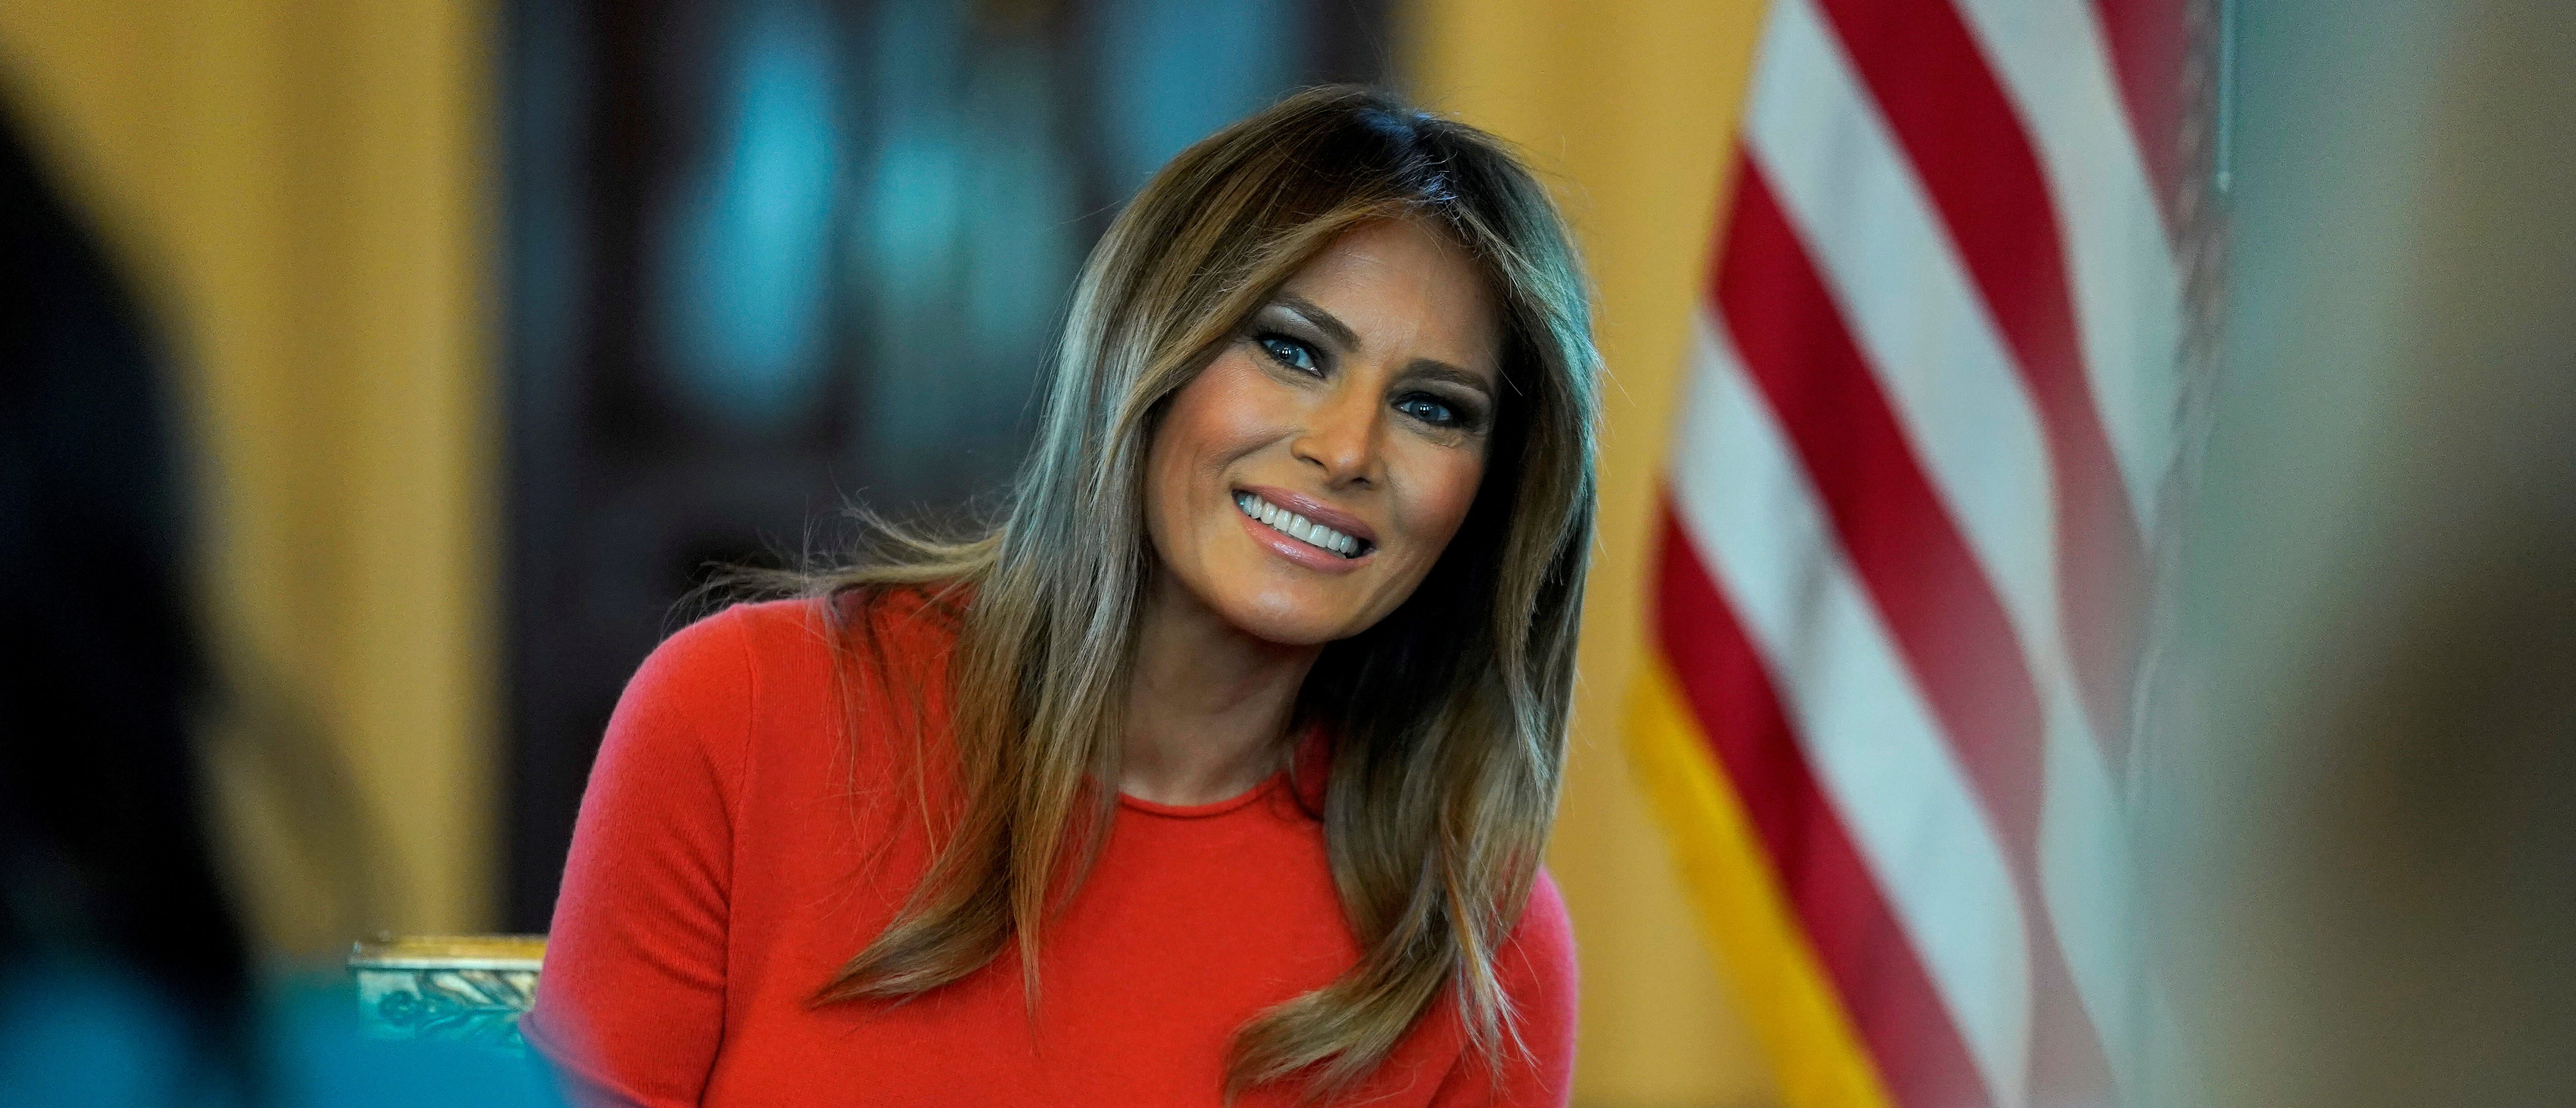 FILE PHOTO: U.S. first lady Melania Trump sits during a listening session with students at the White House in Washington, U.S., April 9, 2018. REUTERS/Joshua Roberts/File Photo - RC1A081B3A50